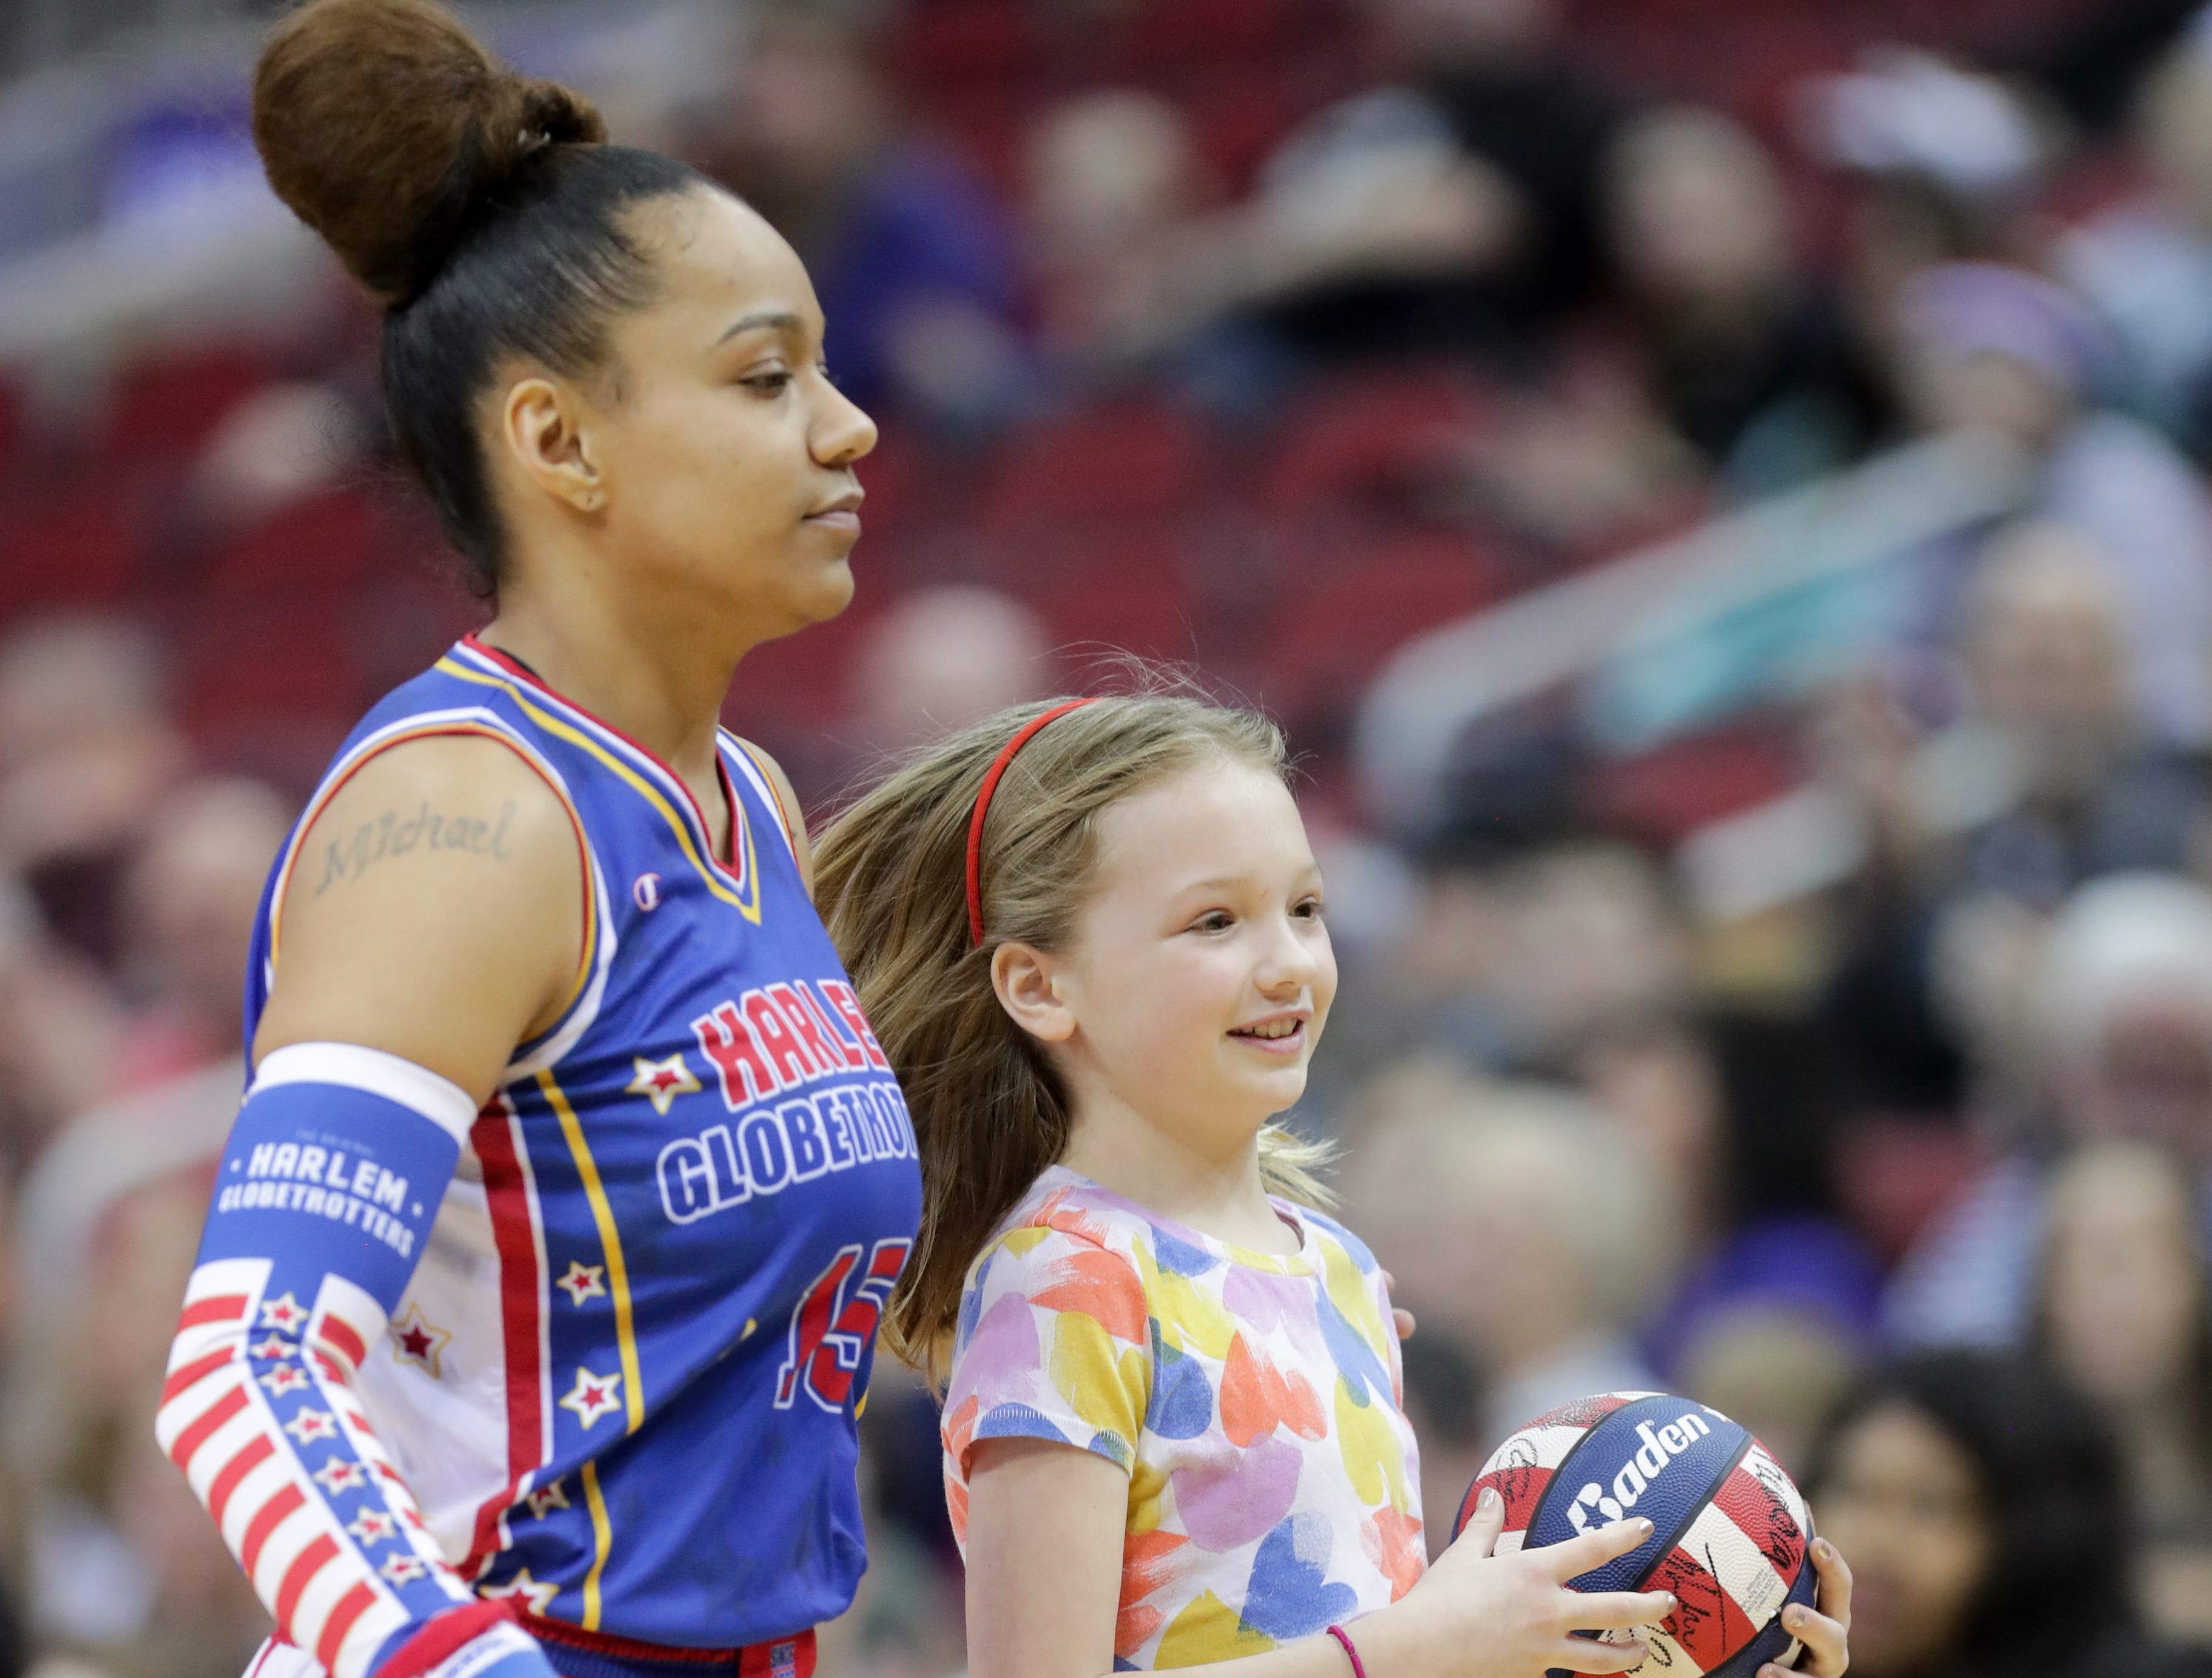 Harlem Globetrotters' Ice escorts a kid back to her seat after she won a prize. Jan. 19, 2019